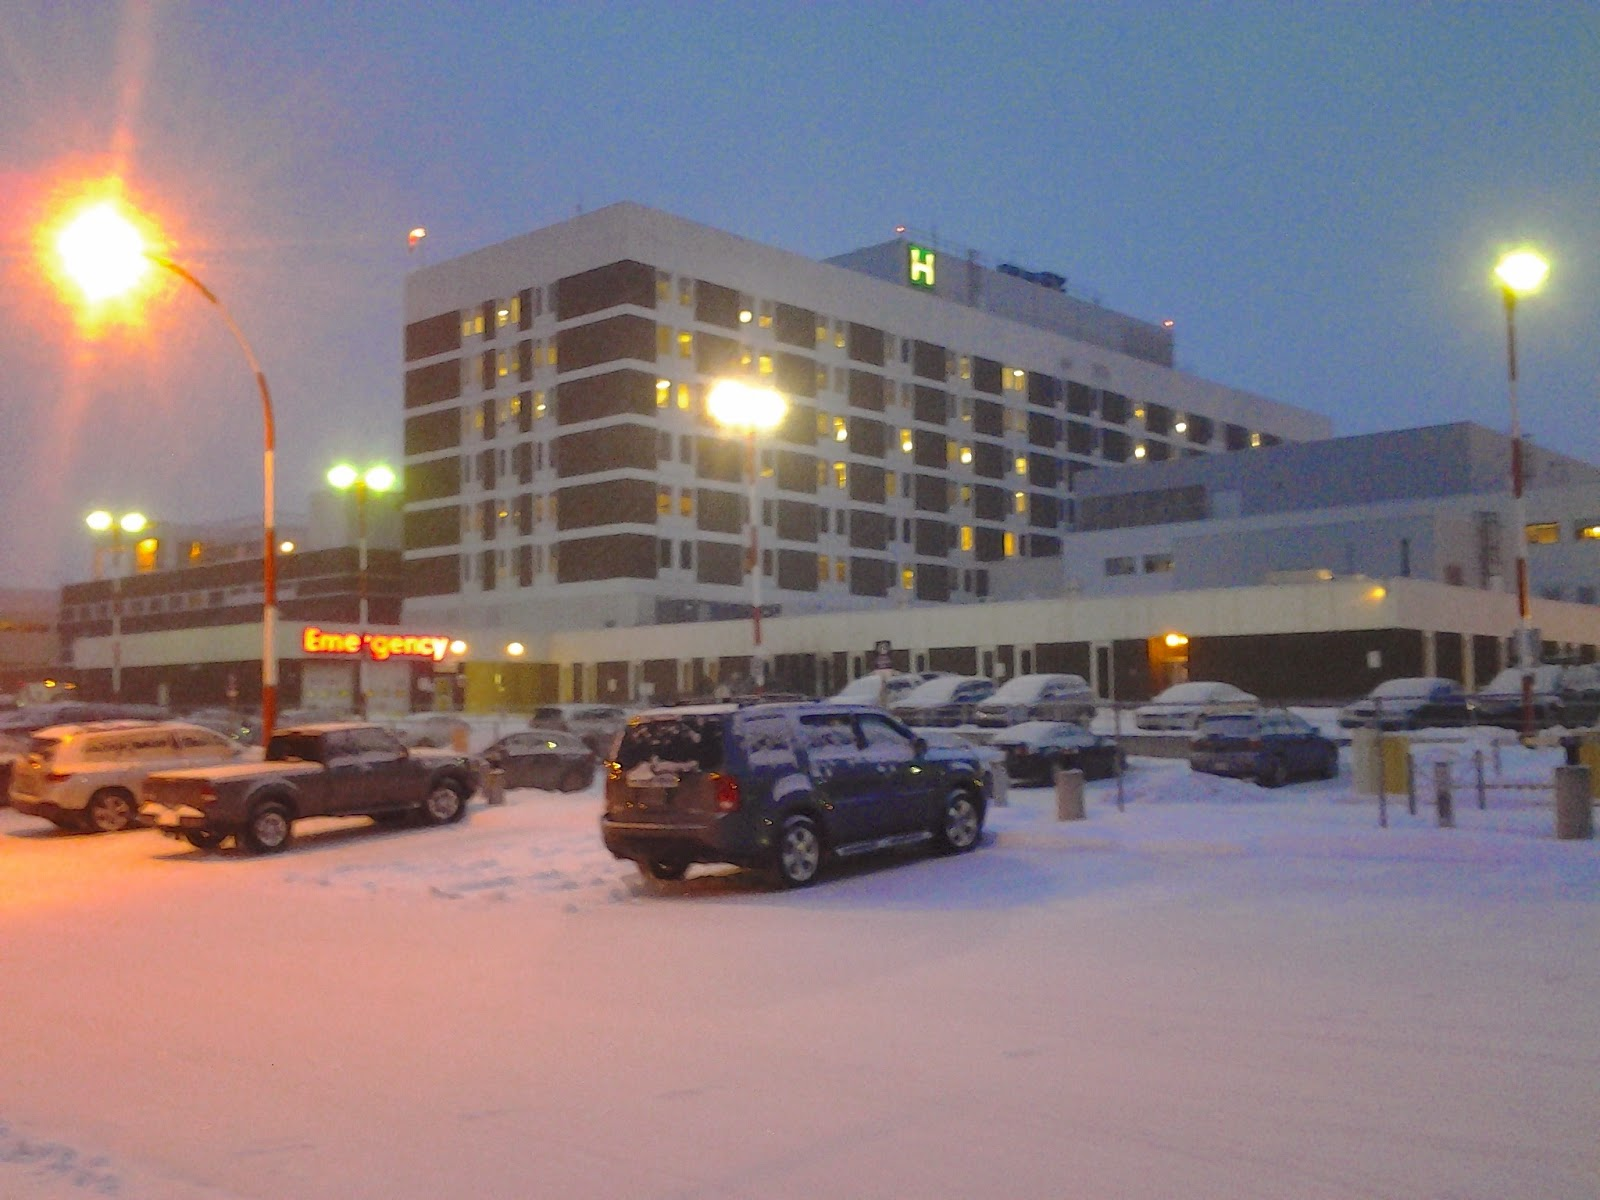 misericordia hospital edmonton